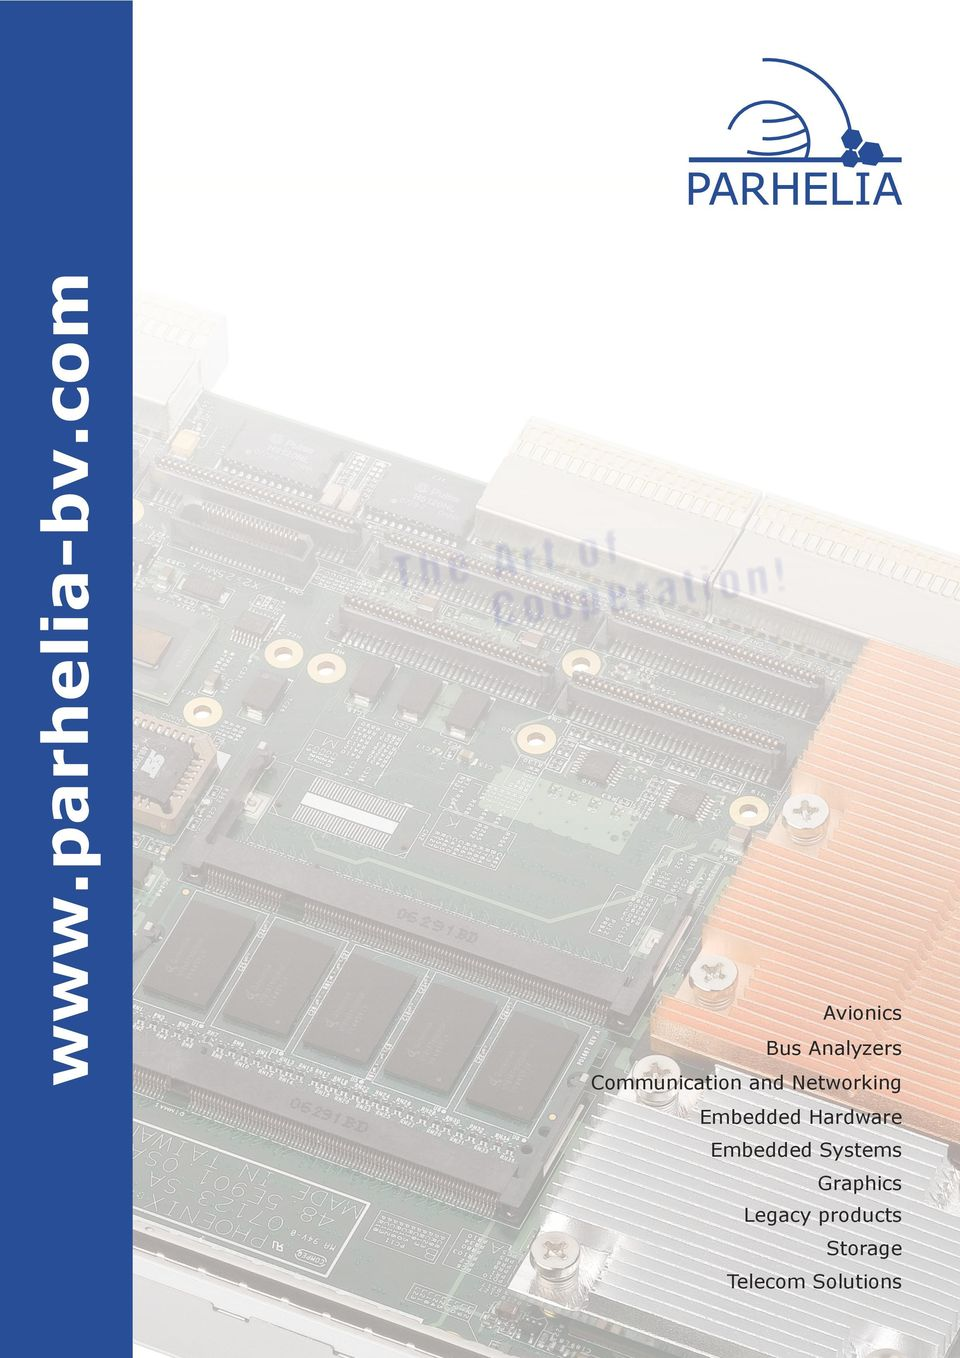 Networking Embedded Hardware Embedded Systems